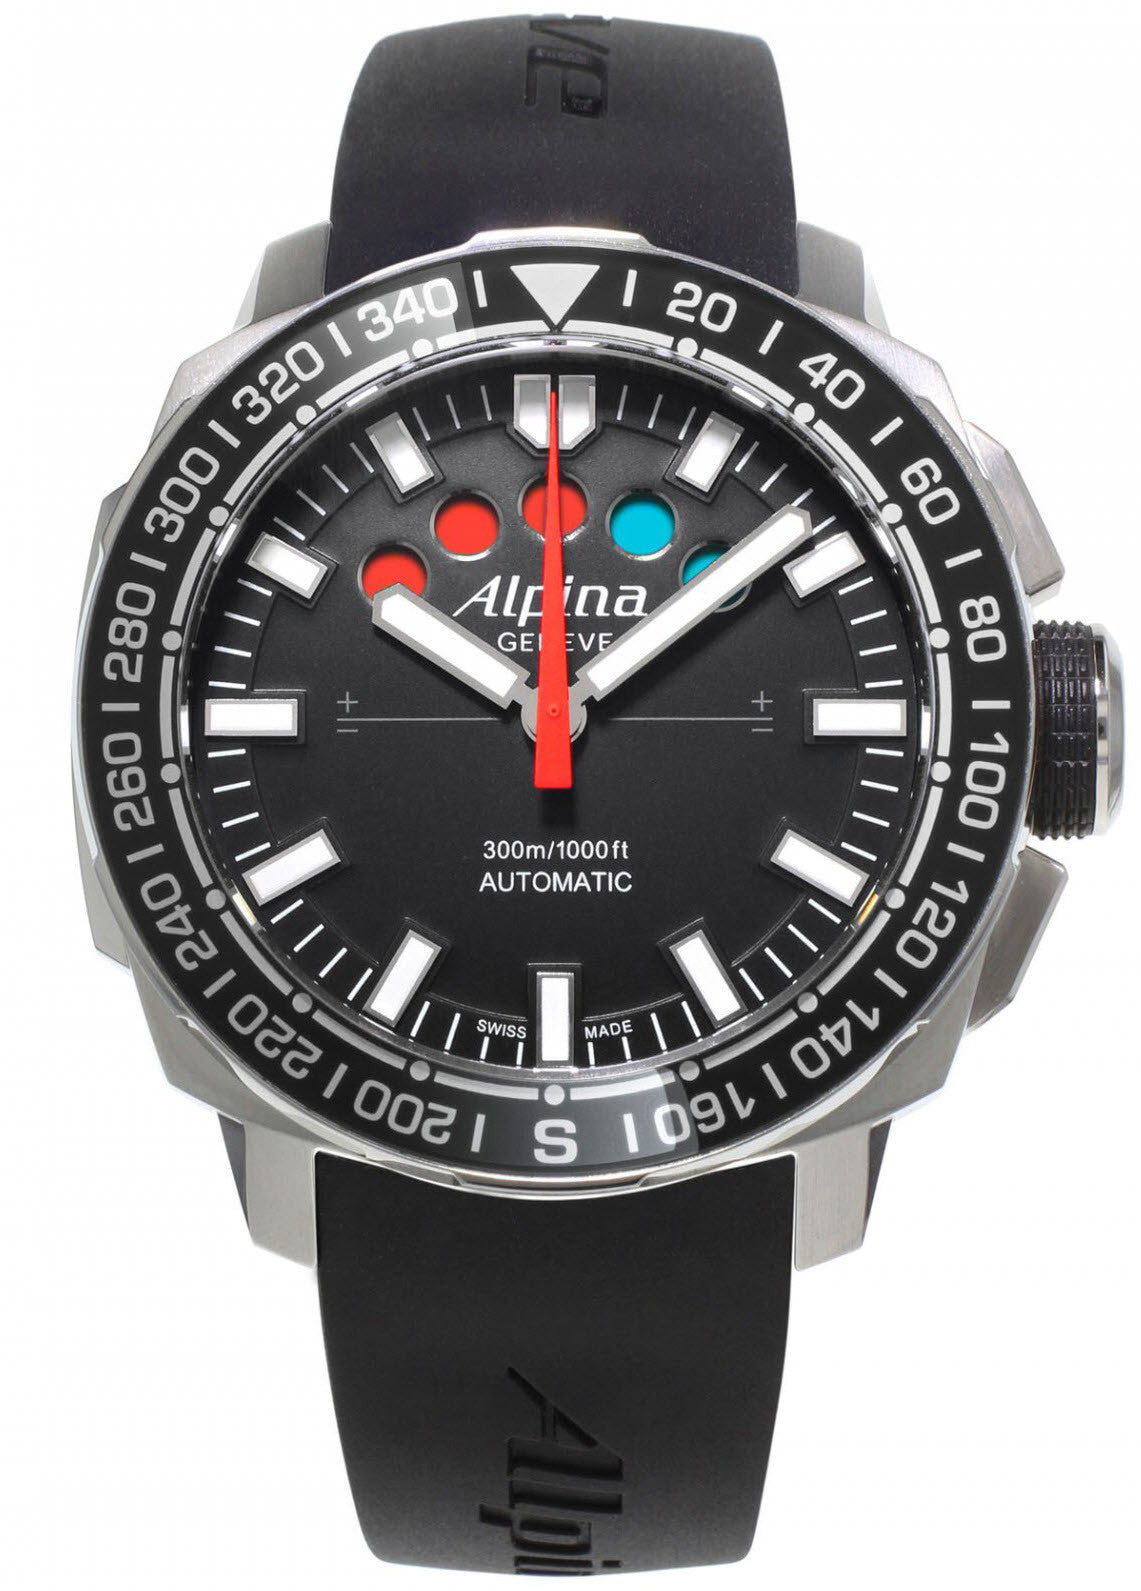 Alpina Watch Seastrong Yachtimer Countdown Limited Edition